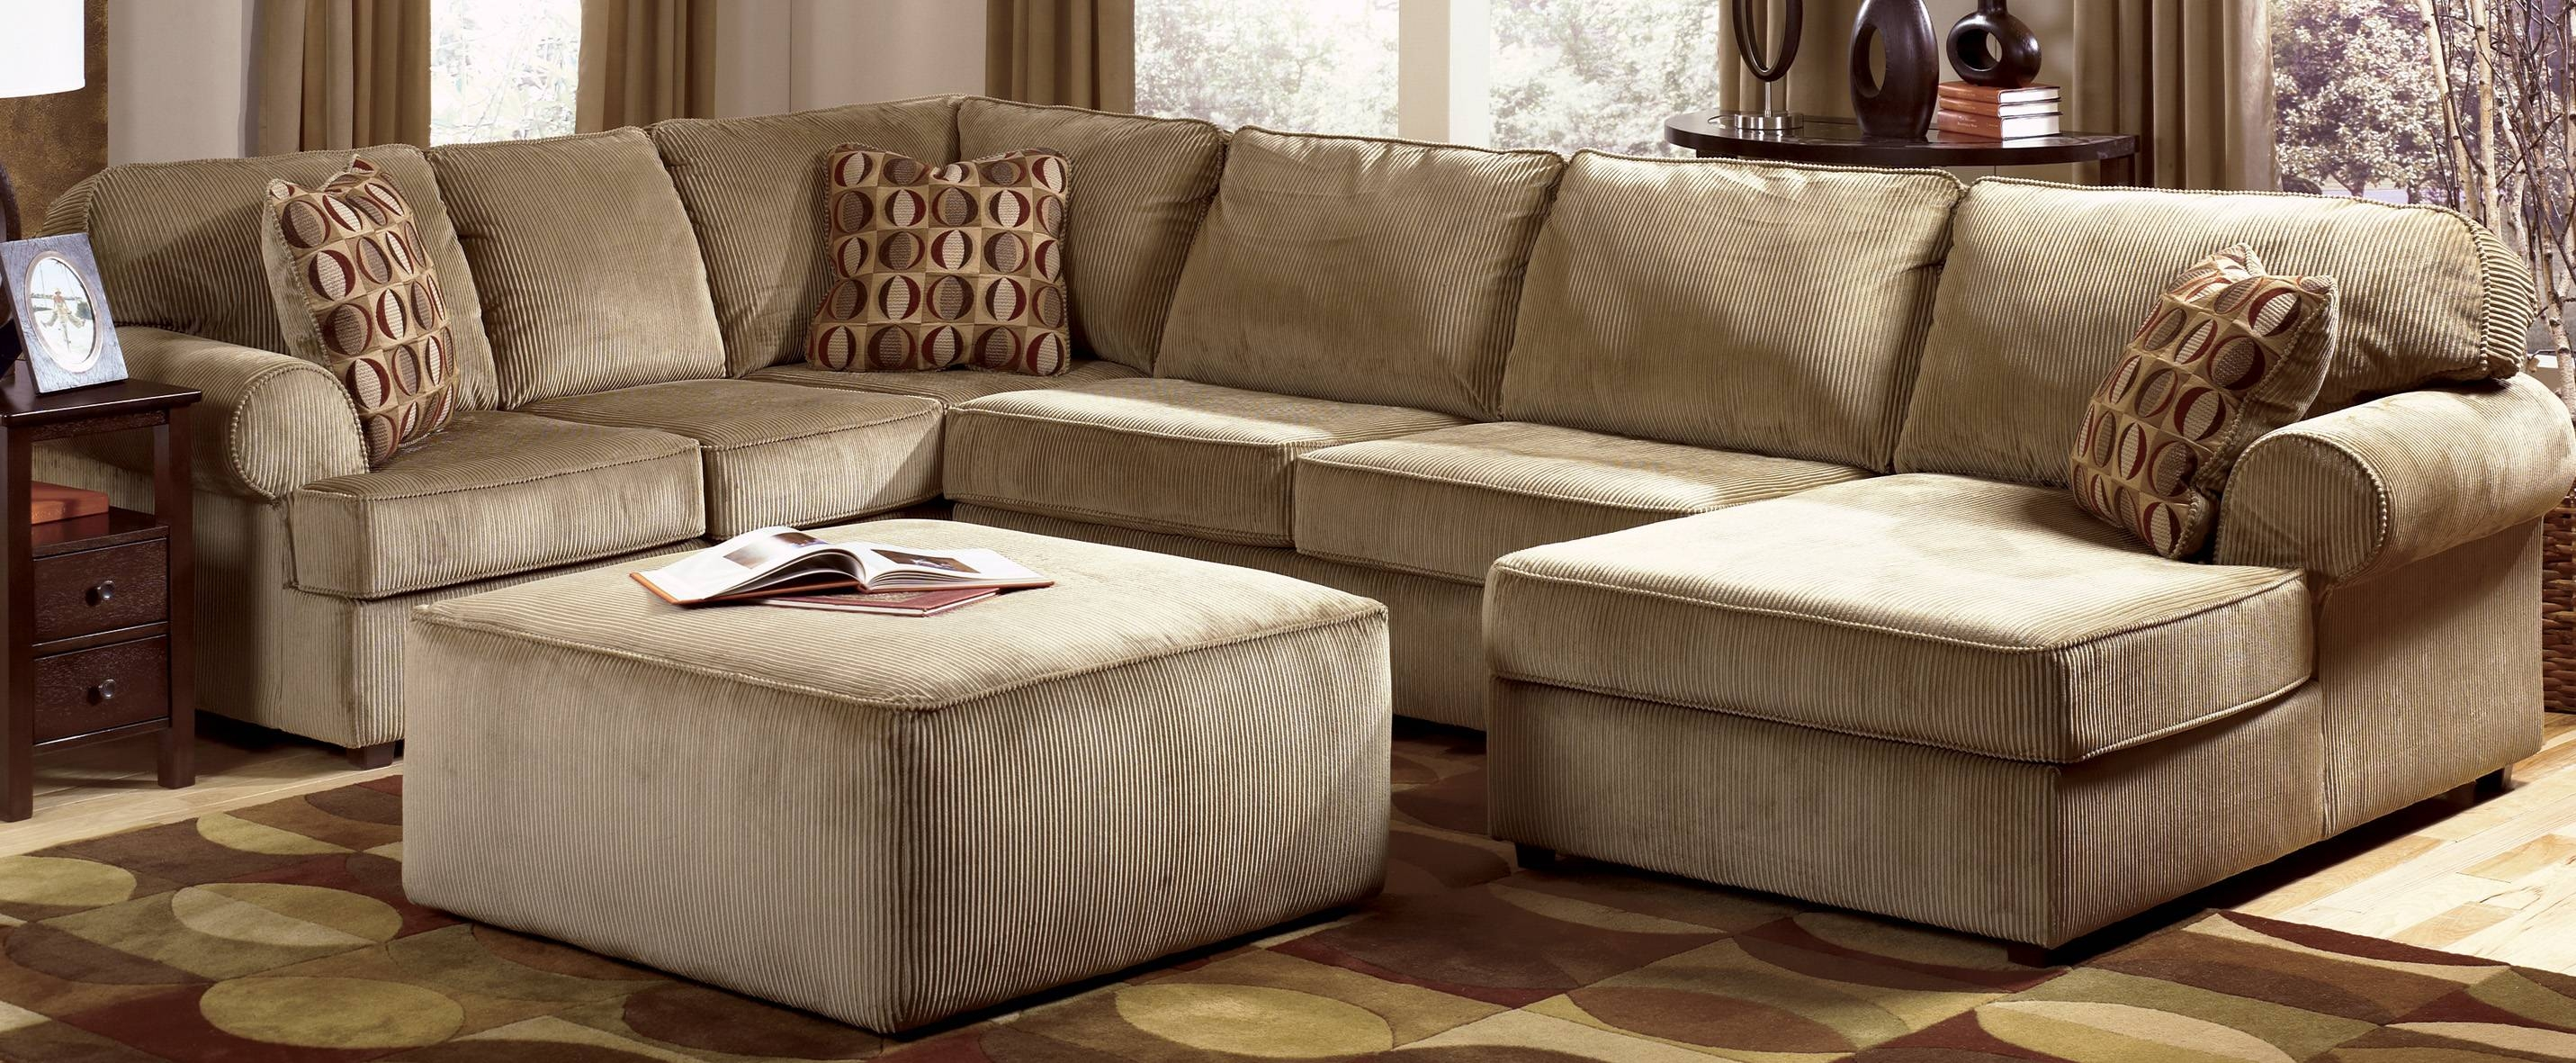 Sofas: Oversized Sofas That Are Ready For Hours Of Lounging Time throughout C Shaped Sectional Sofa (Image 24 of 30)